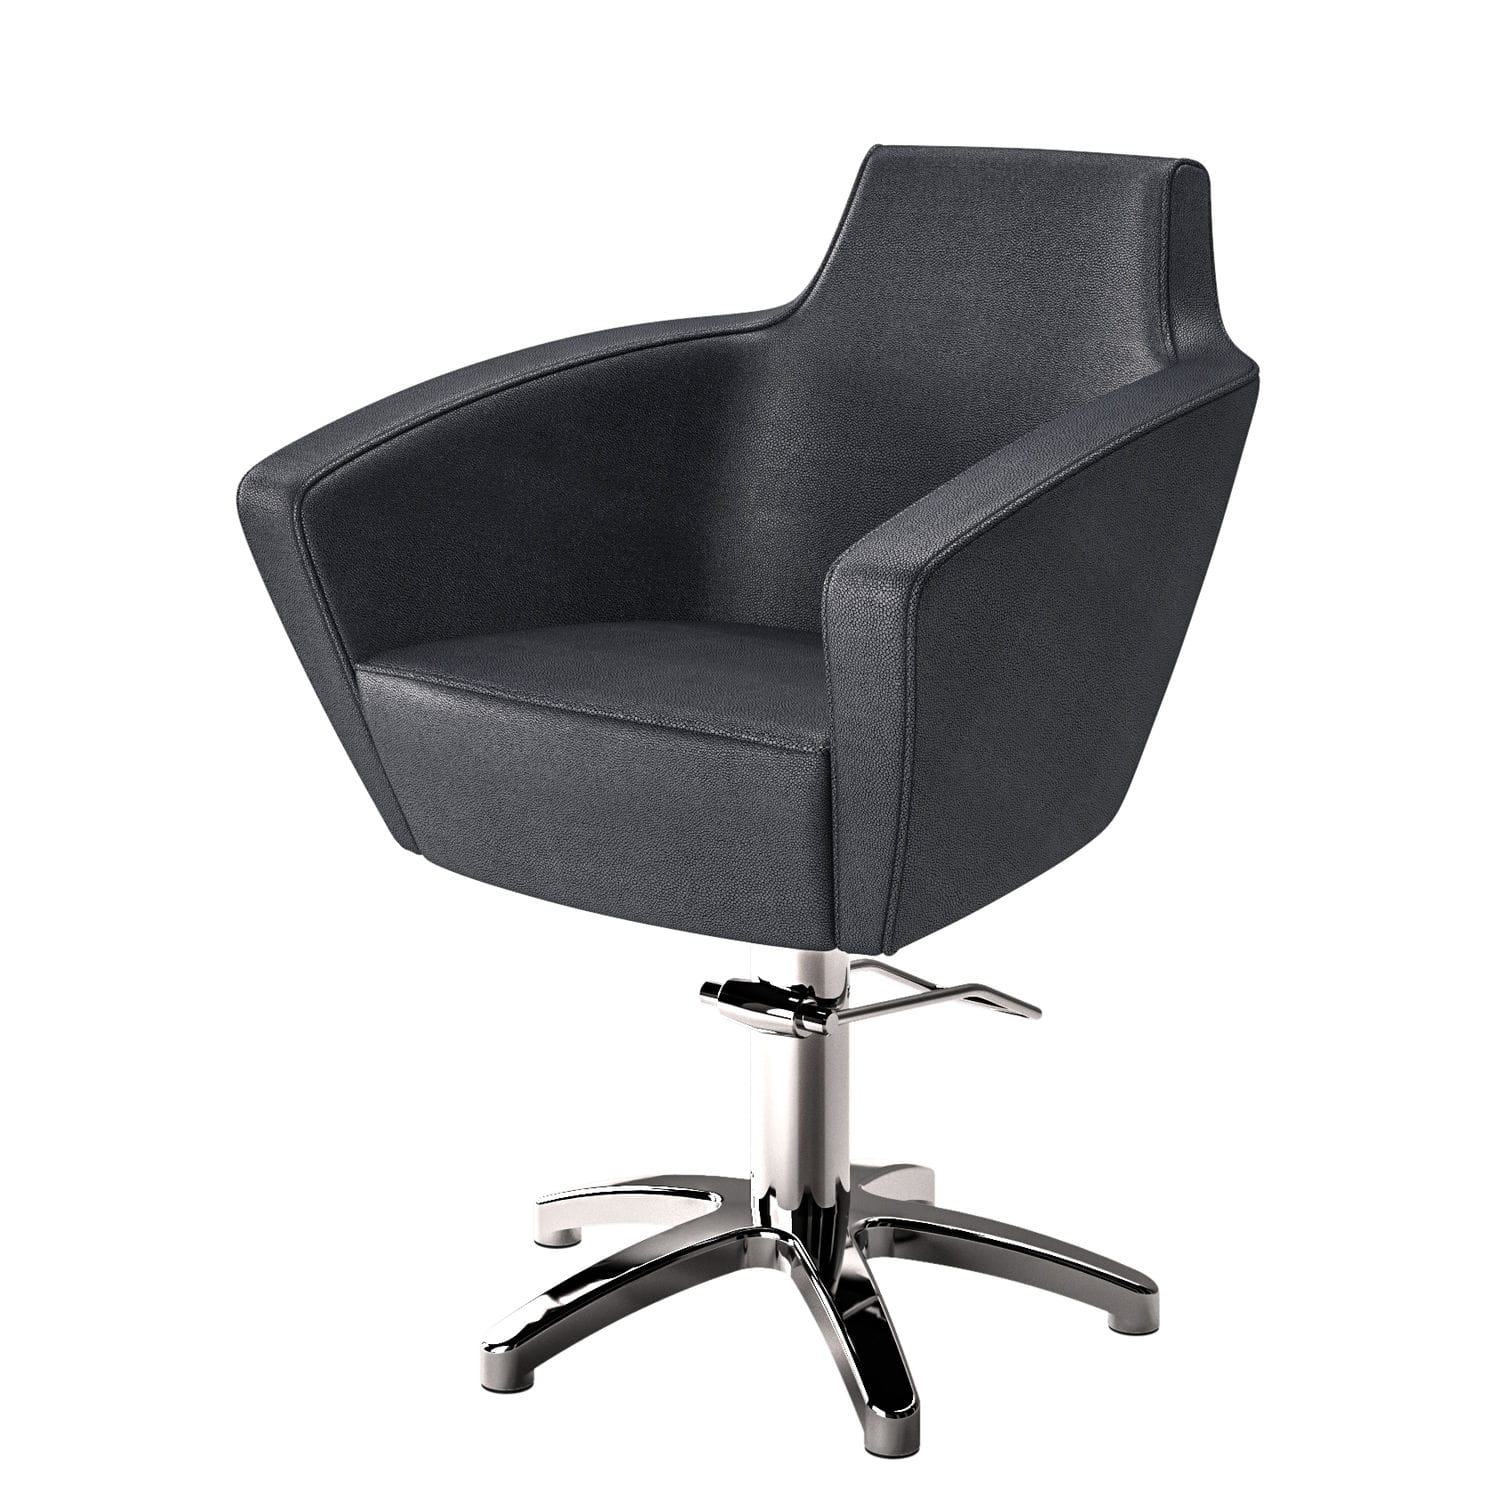 chair revolving steel base with wheels faux leather and a half synthetic beauty salon star swivel anita